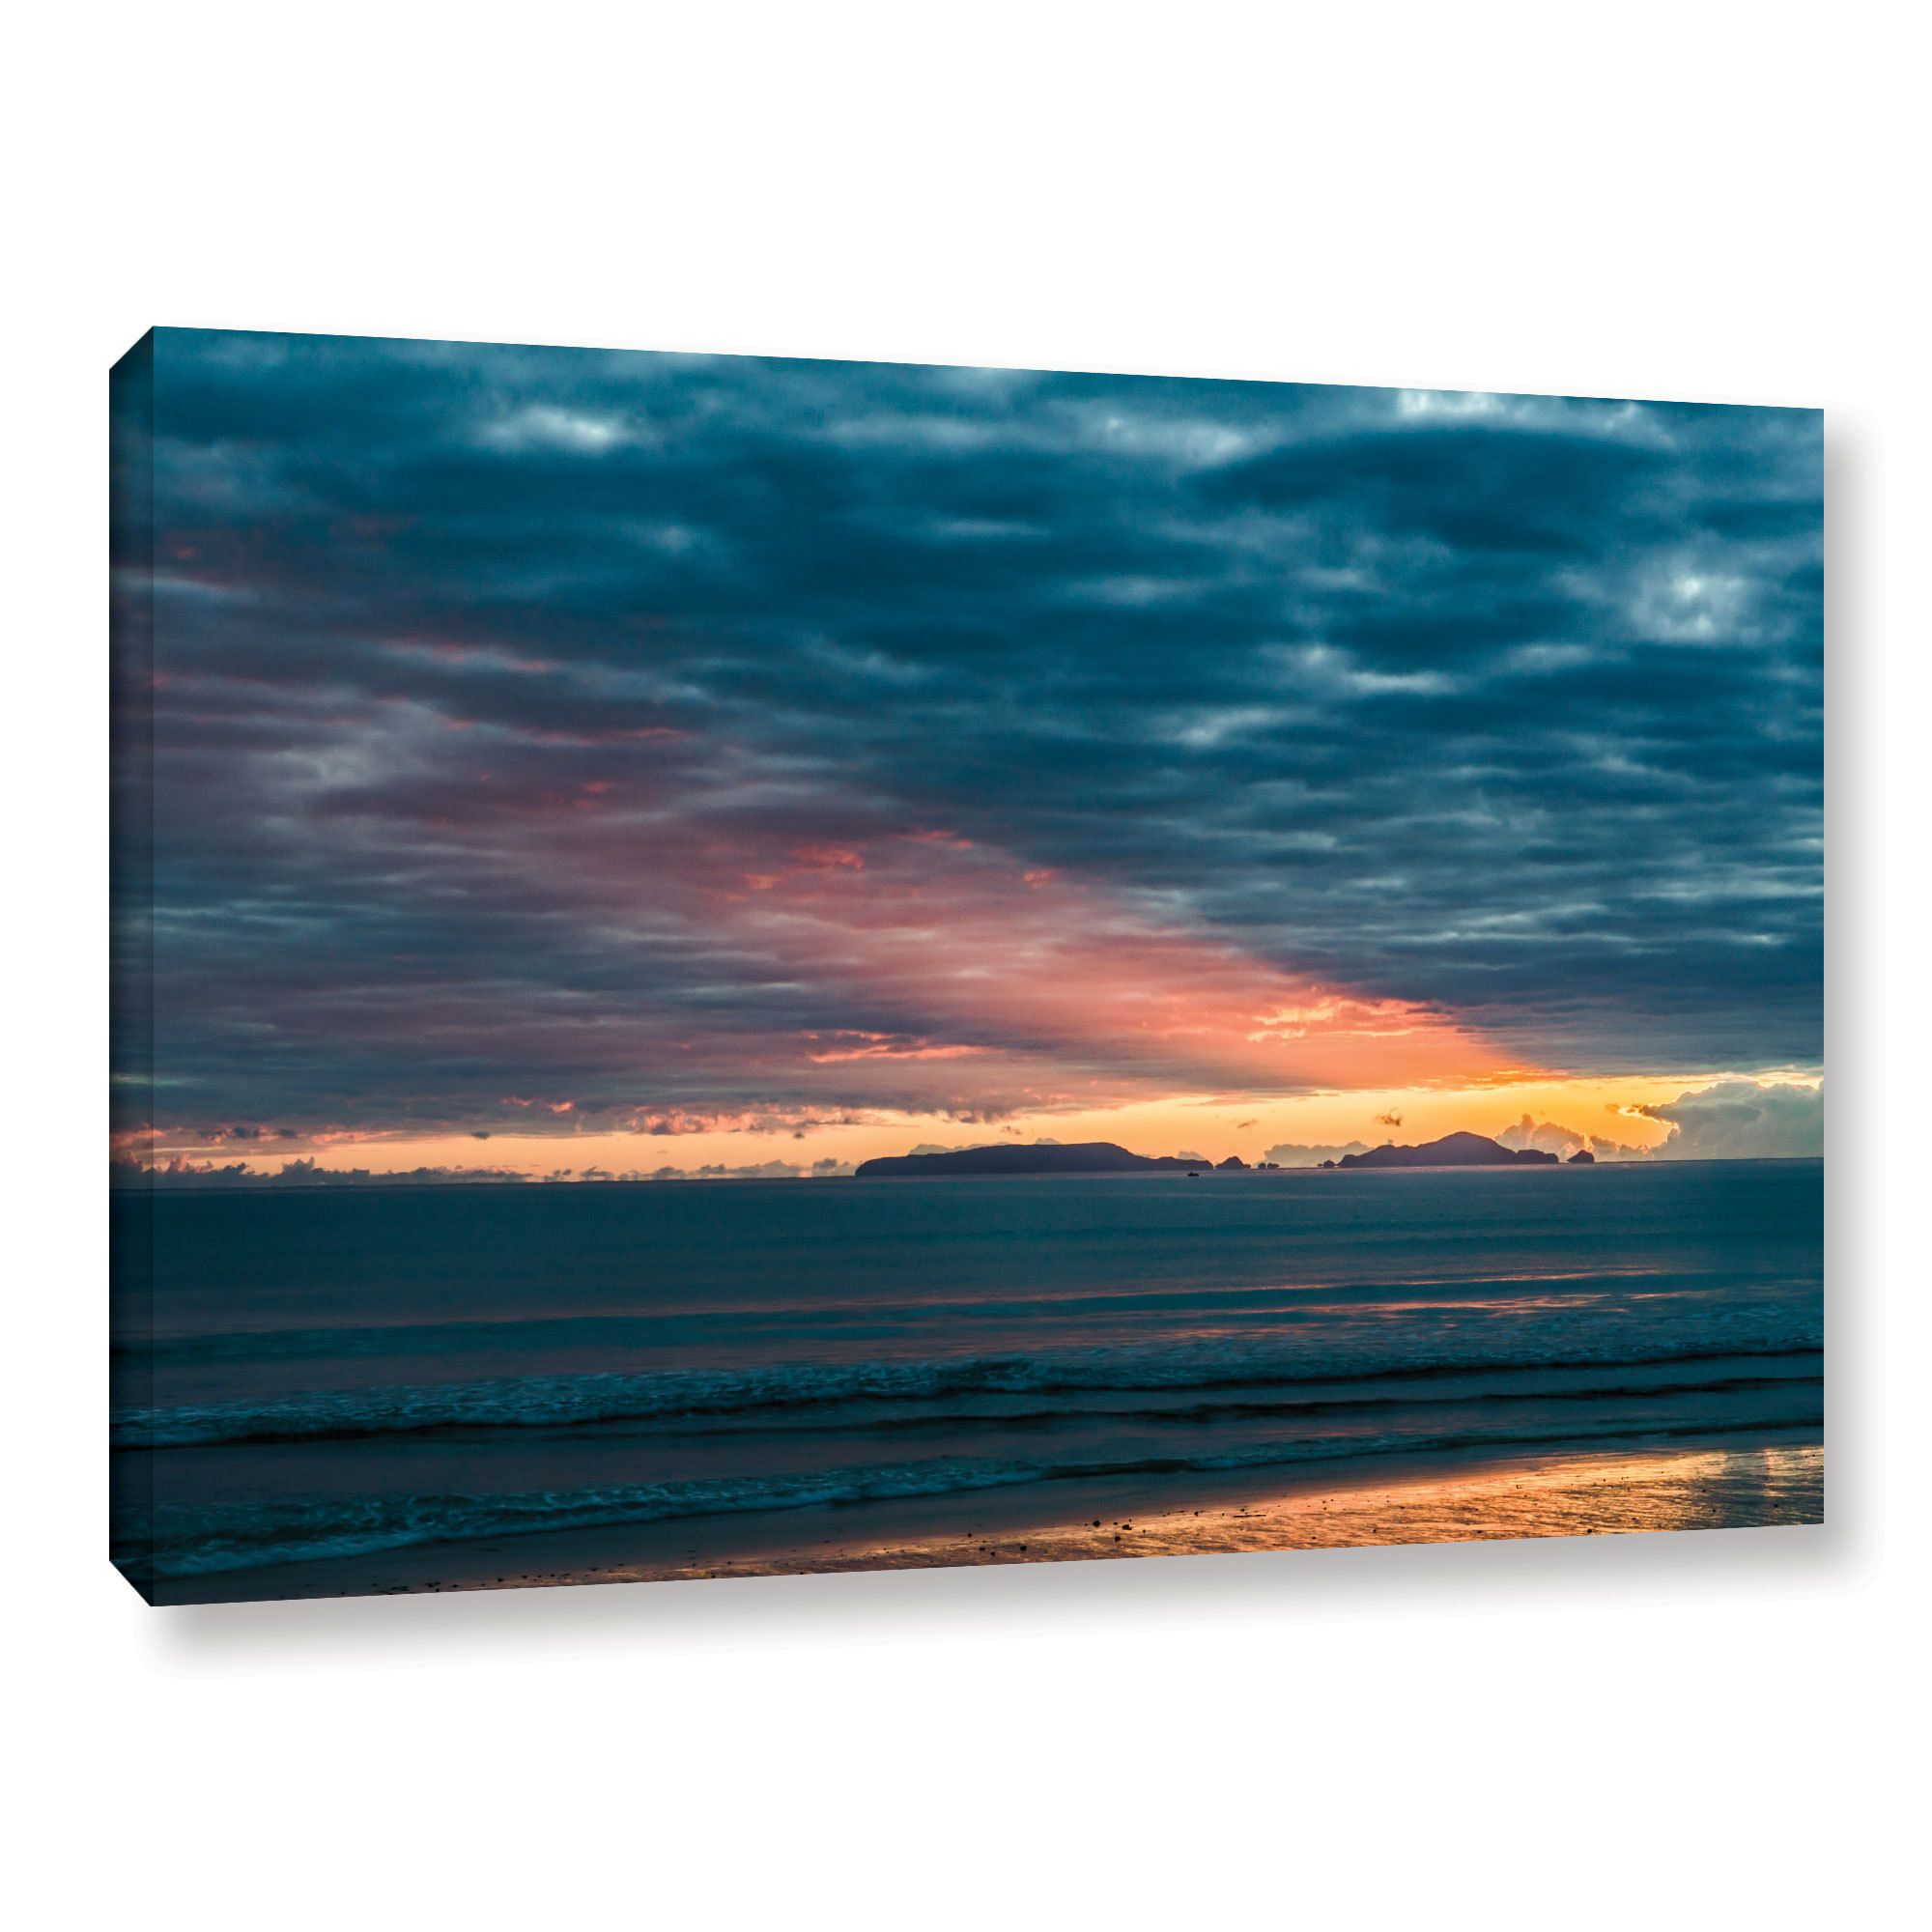 ArtWall Andrew Lever's 'Sunrise at Sandy Bay' Gallery Wrapped Canvas